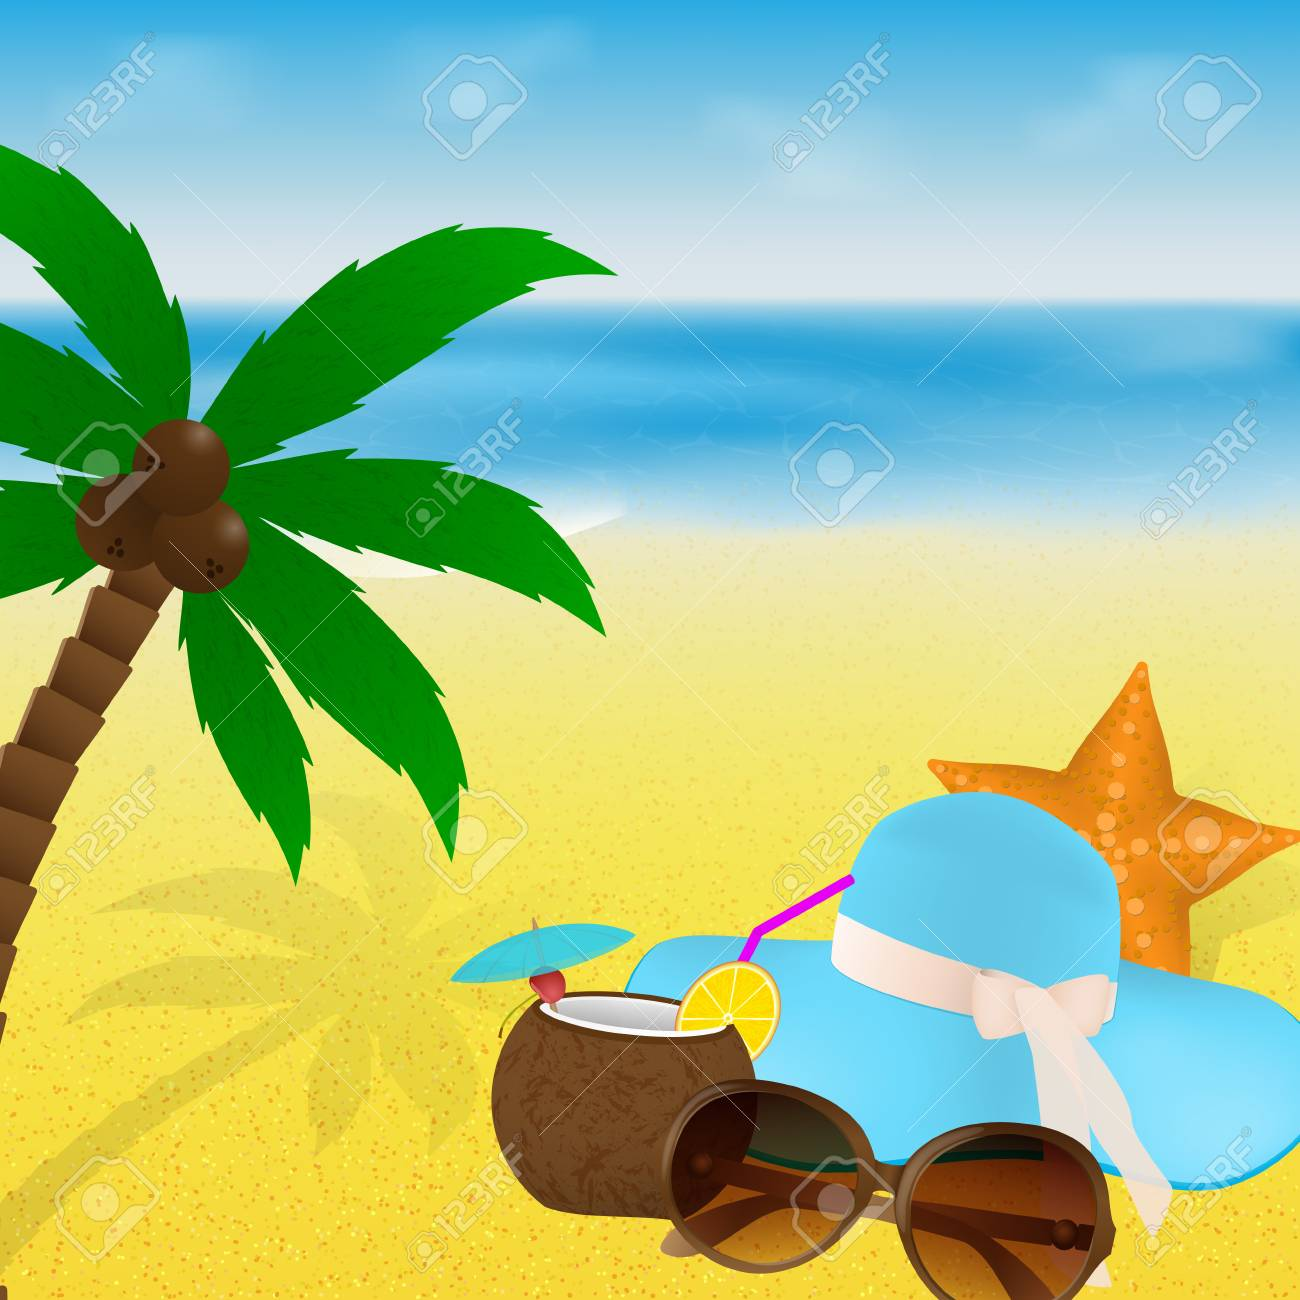 85ed5cd39dc Summer greeting card design. Vector illustration. Summertime vacation beach  with sunglasses